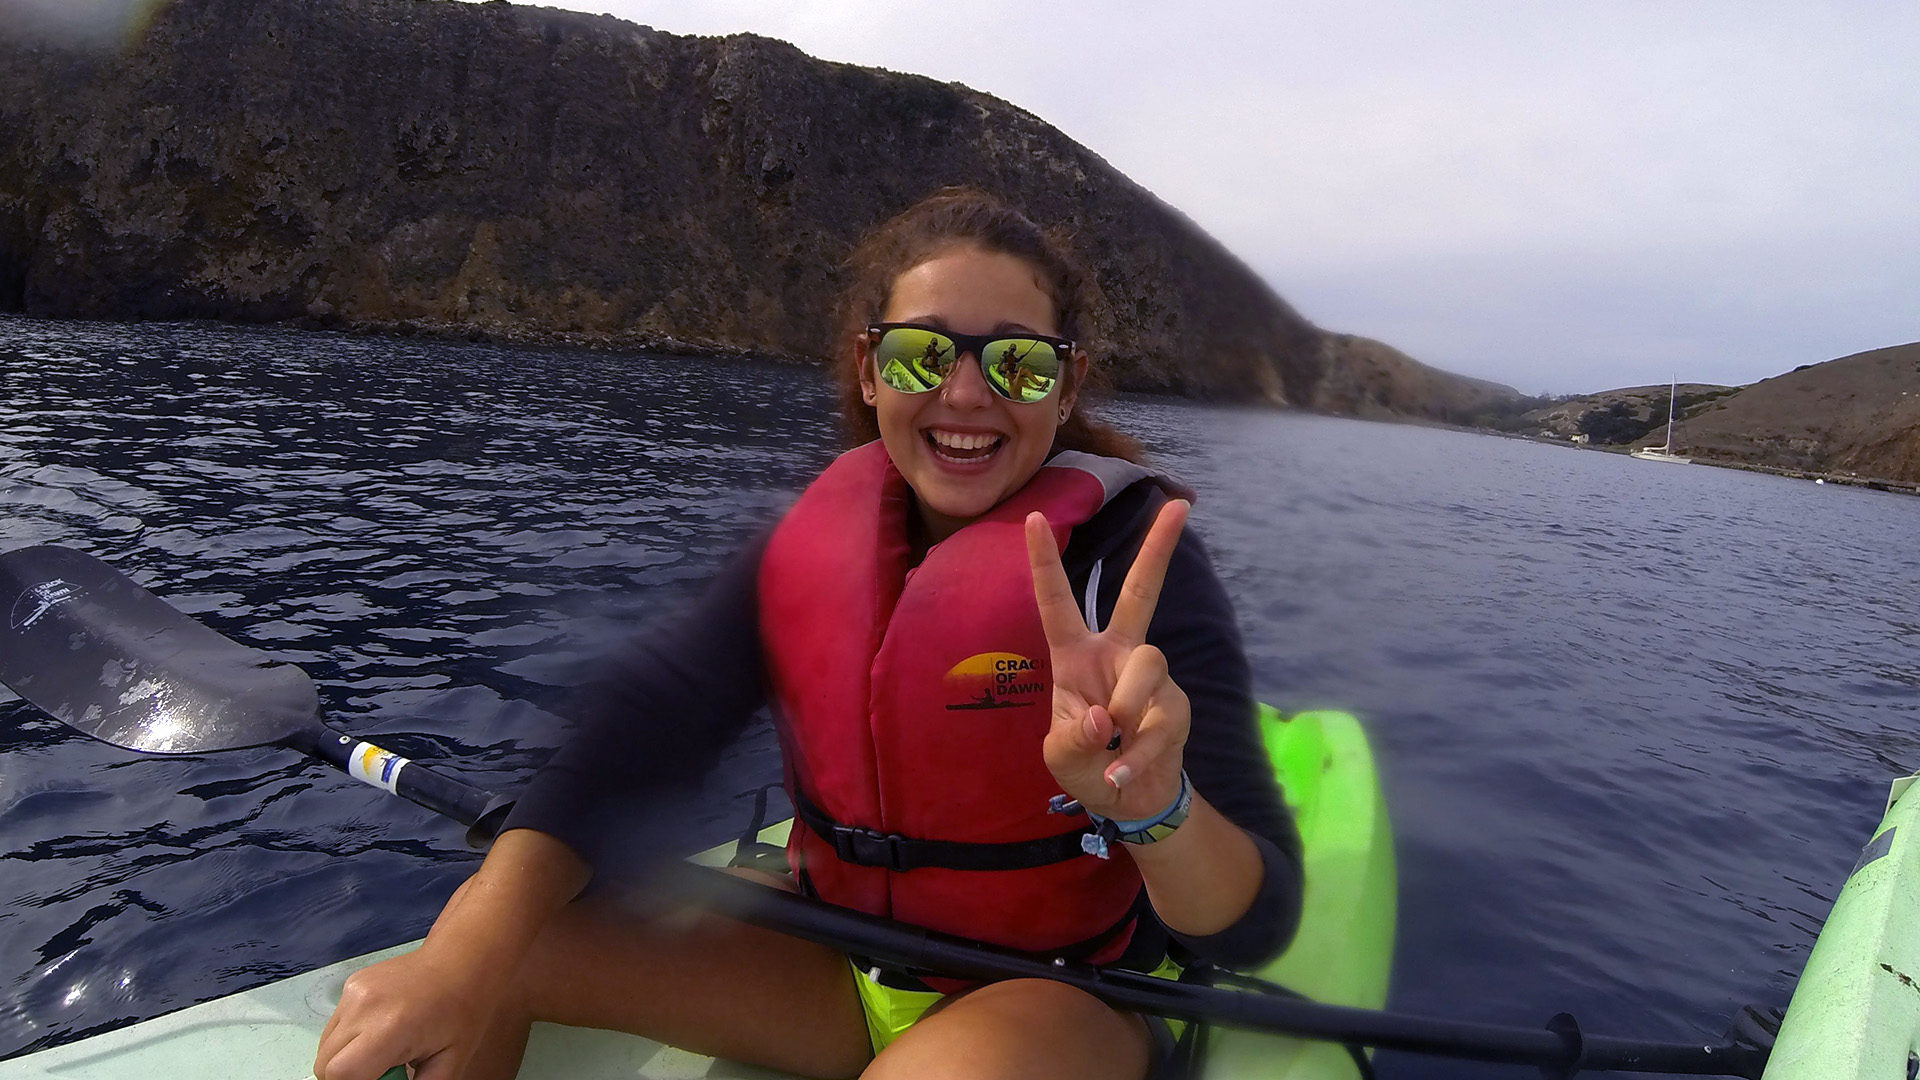 Zeinab Greif with a big smile as she paddles a kayak